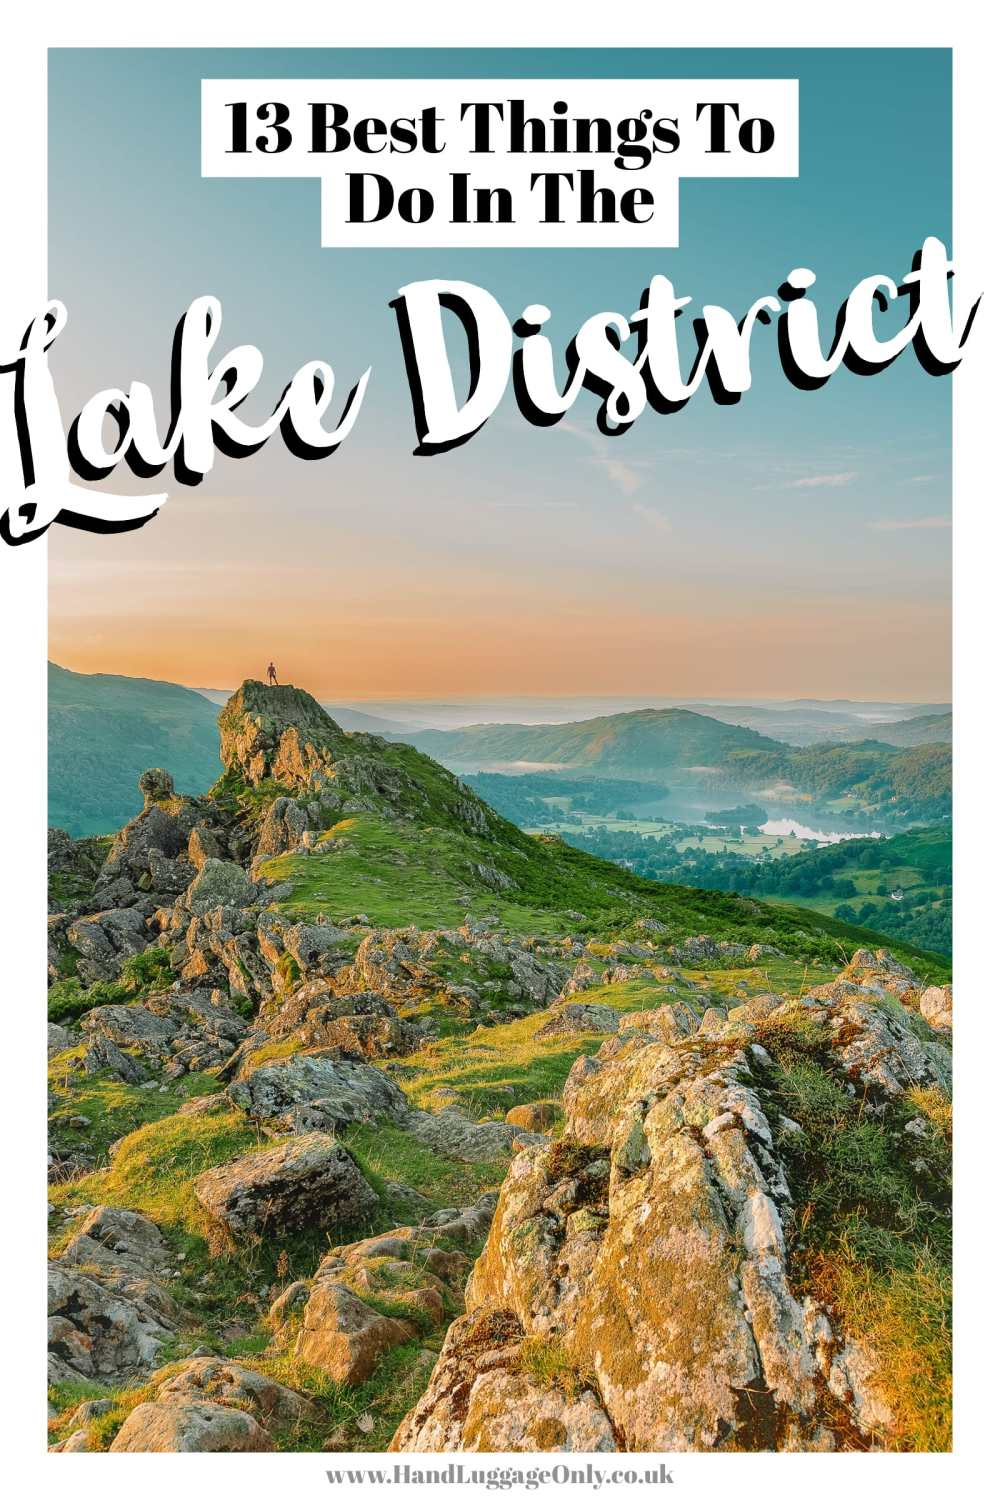 13 Best Things To Do In The Lake District